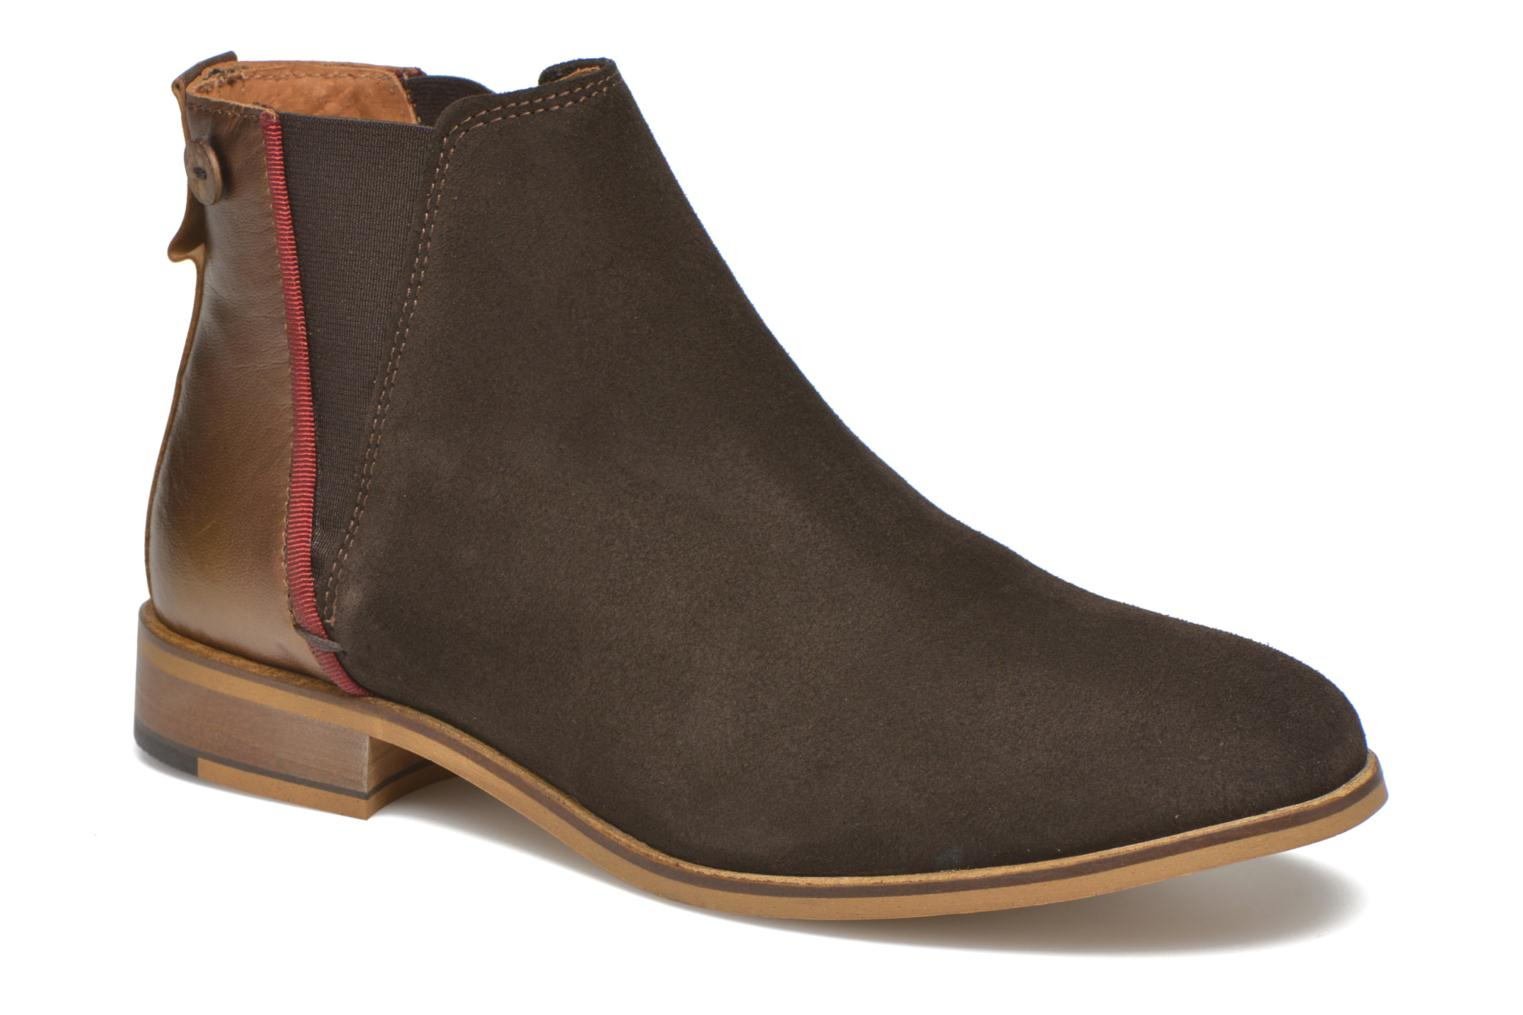 Bottines et boots Faguo Cherry Marron vue détail/paire